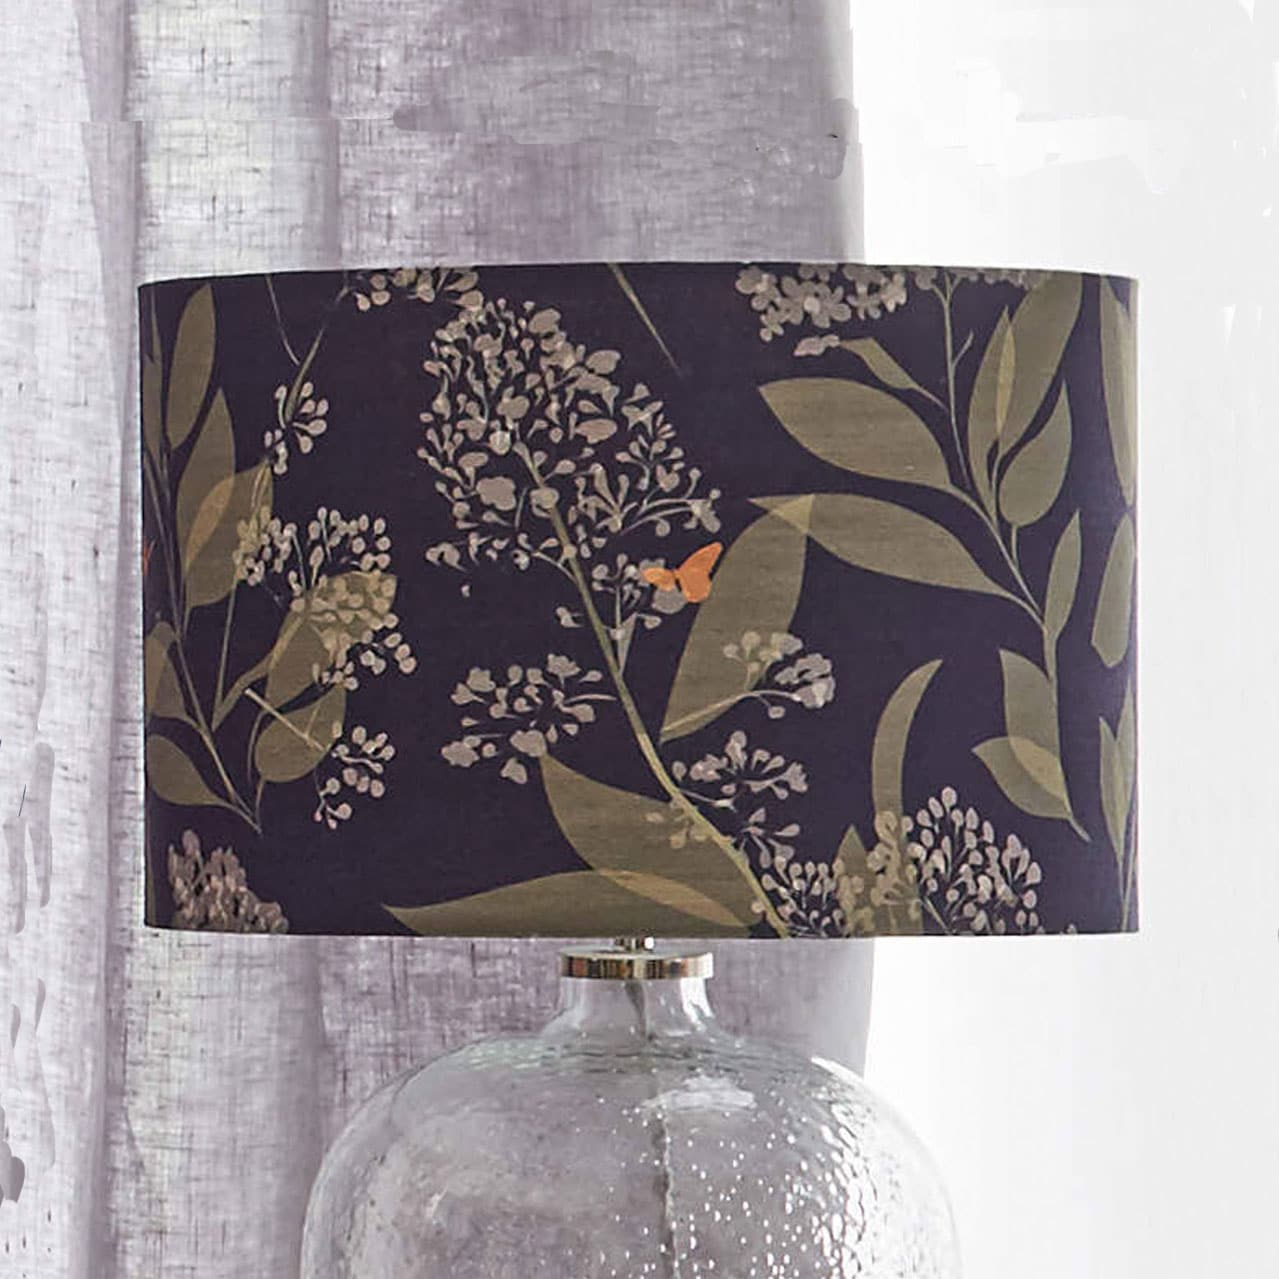 Buds and butterflies lampshade by Lorna Syson